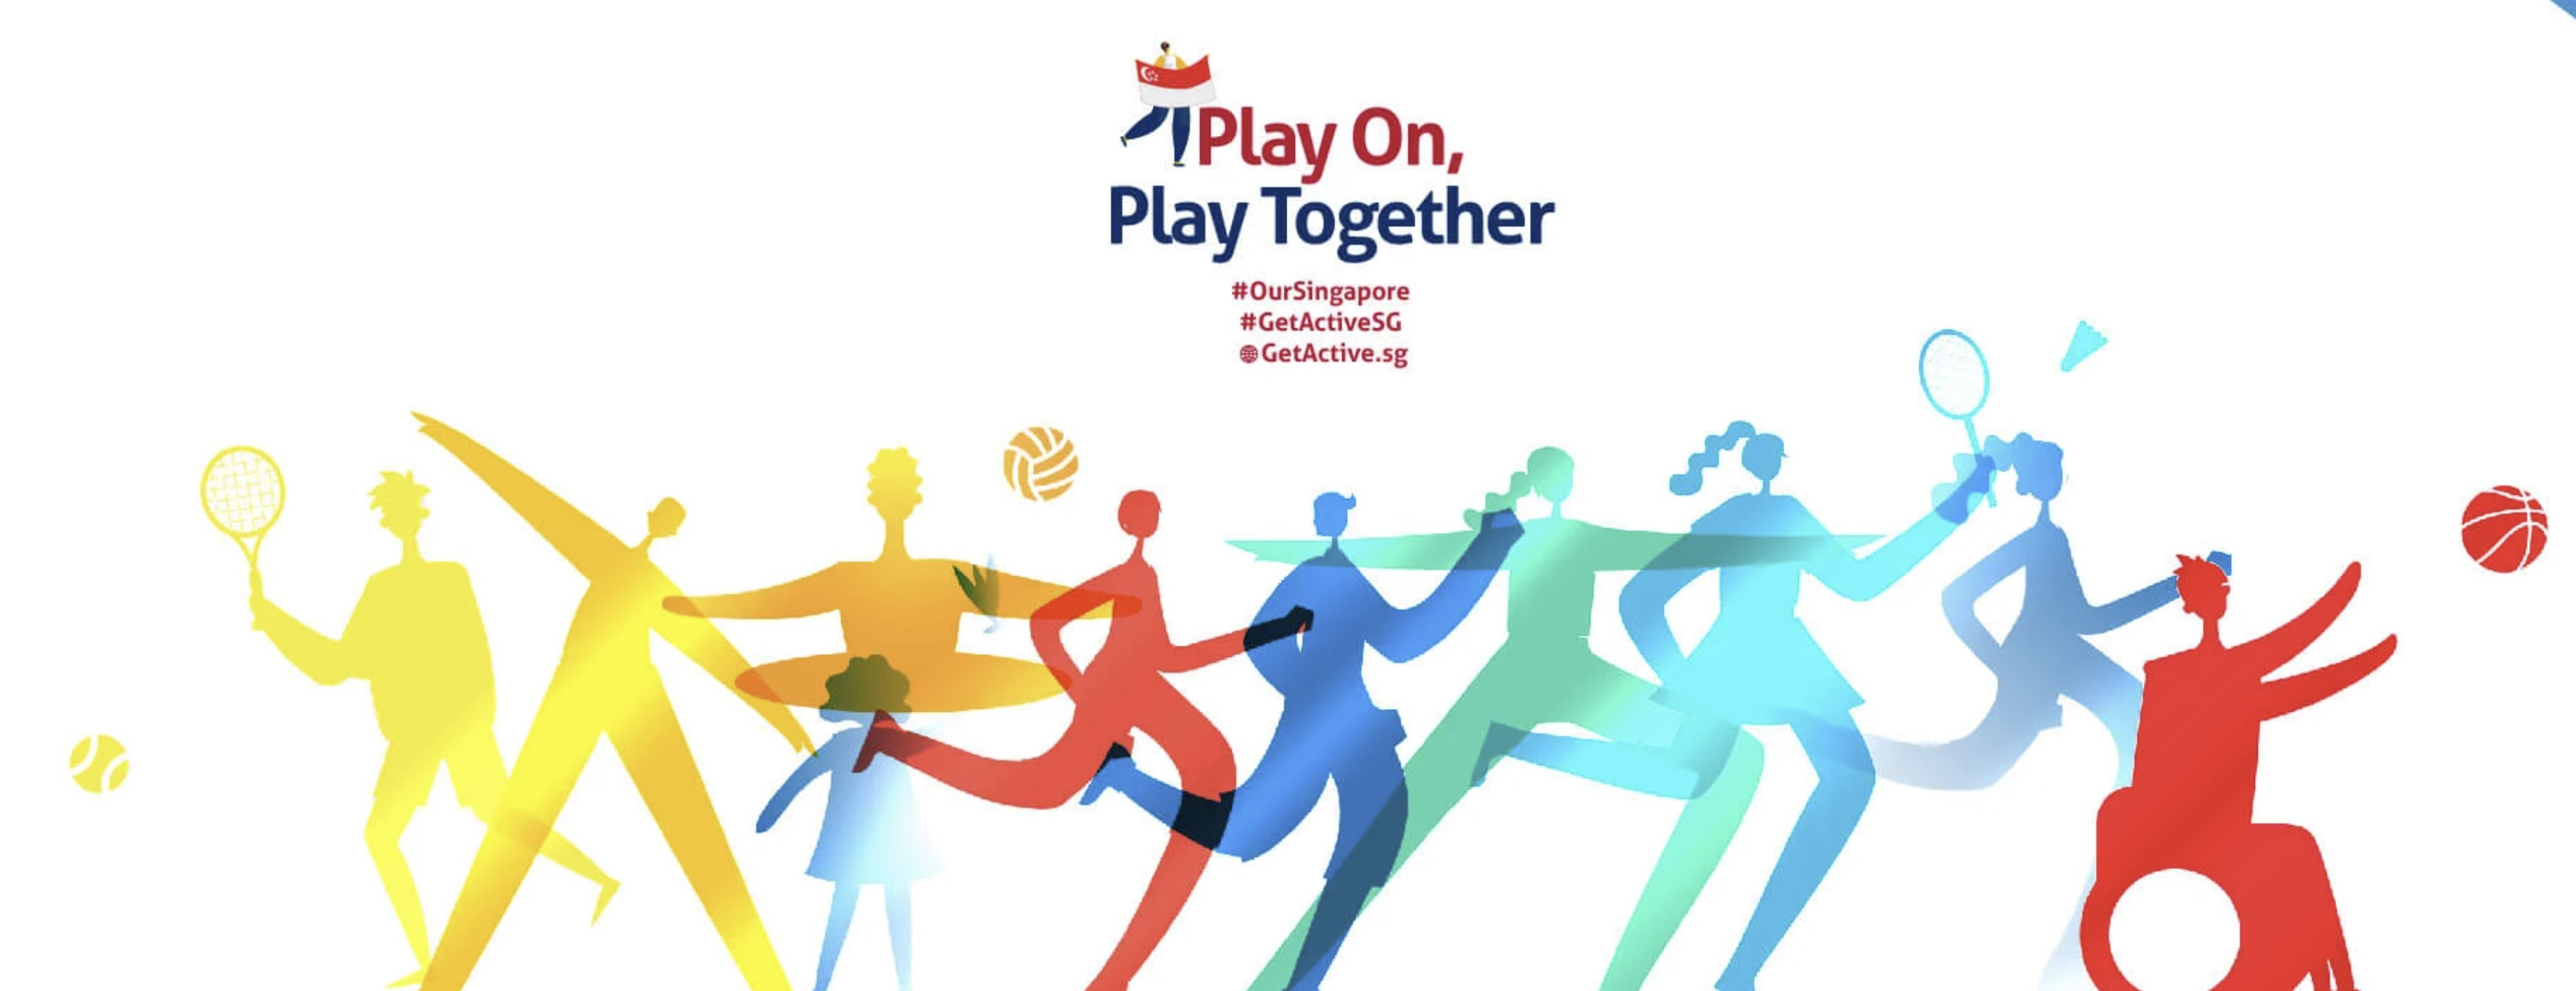 Get Active! Singapore 2021 encourages everyone to play on, play together, in a creative, fun and safe way